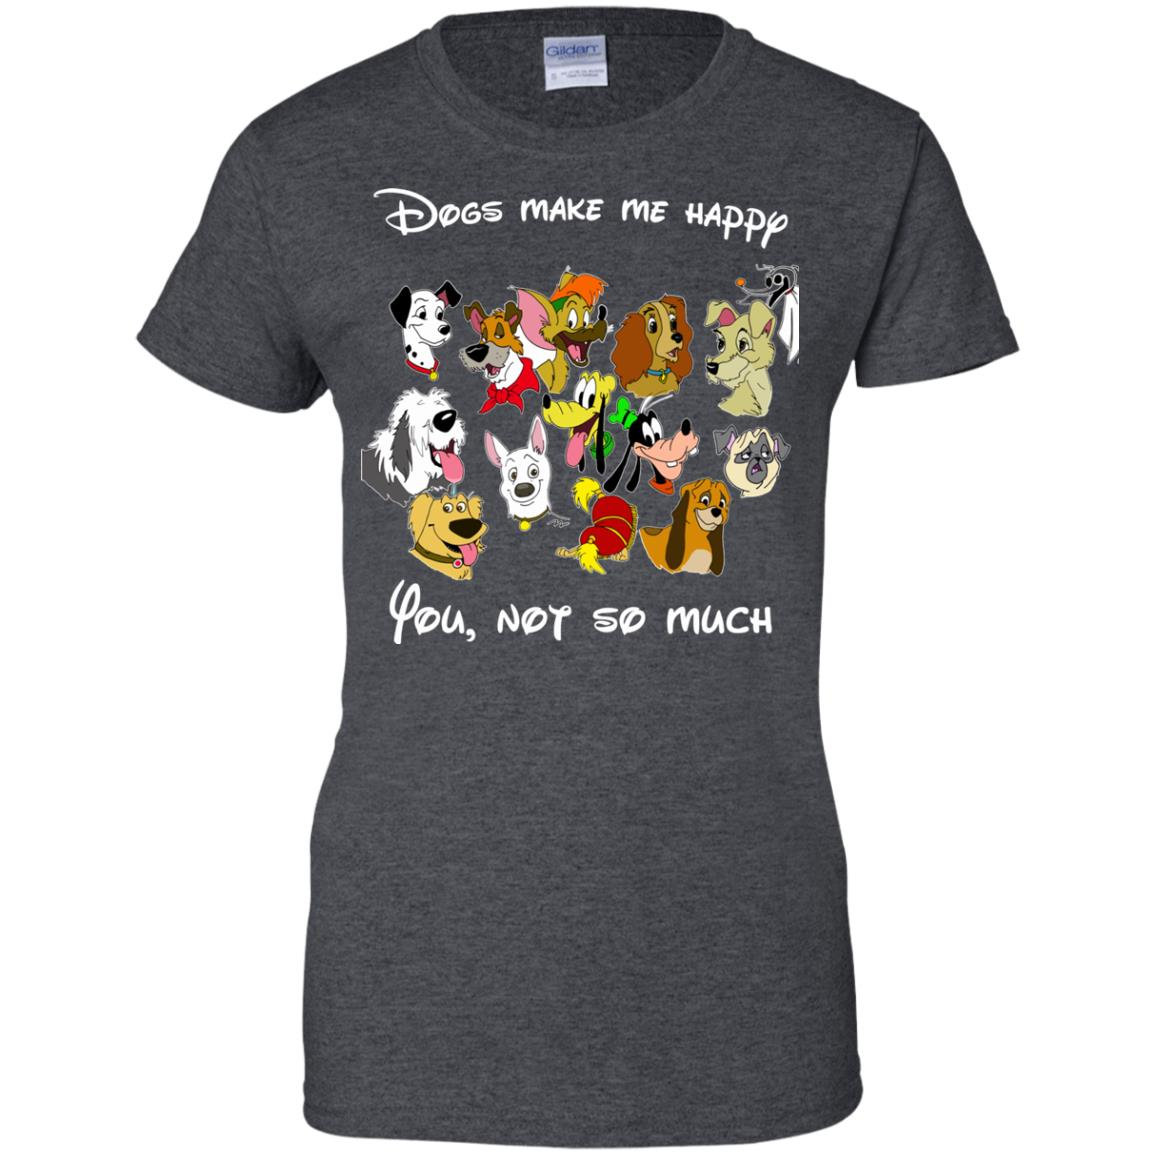 image 901 - Disney Dogs: Dogs make me happy, you no so much shirt, hoodie